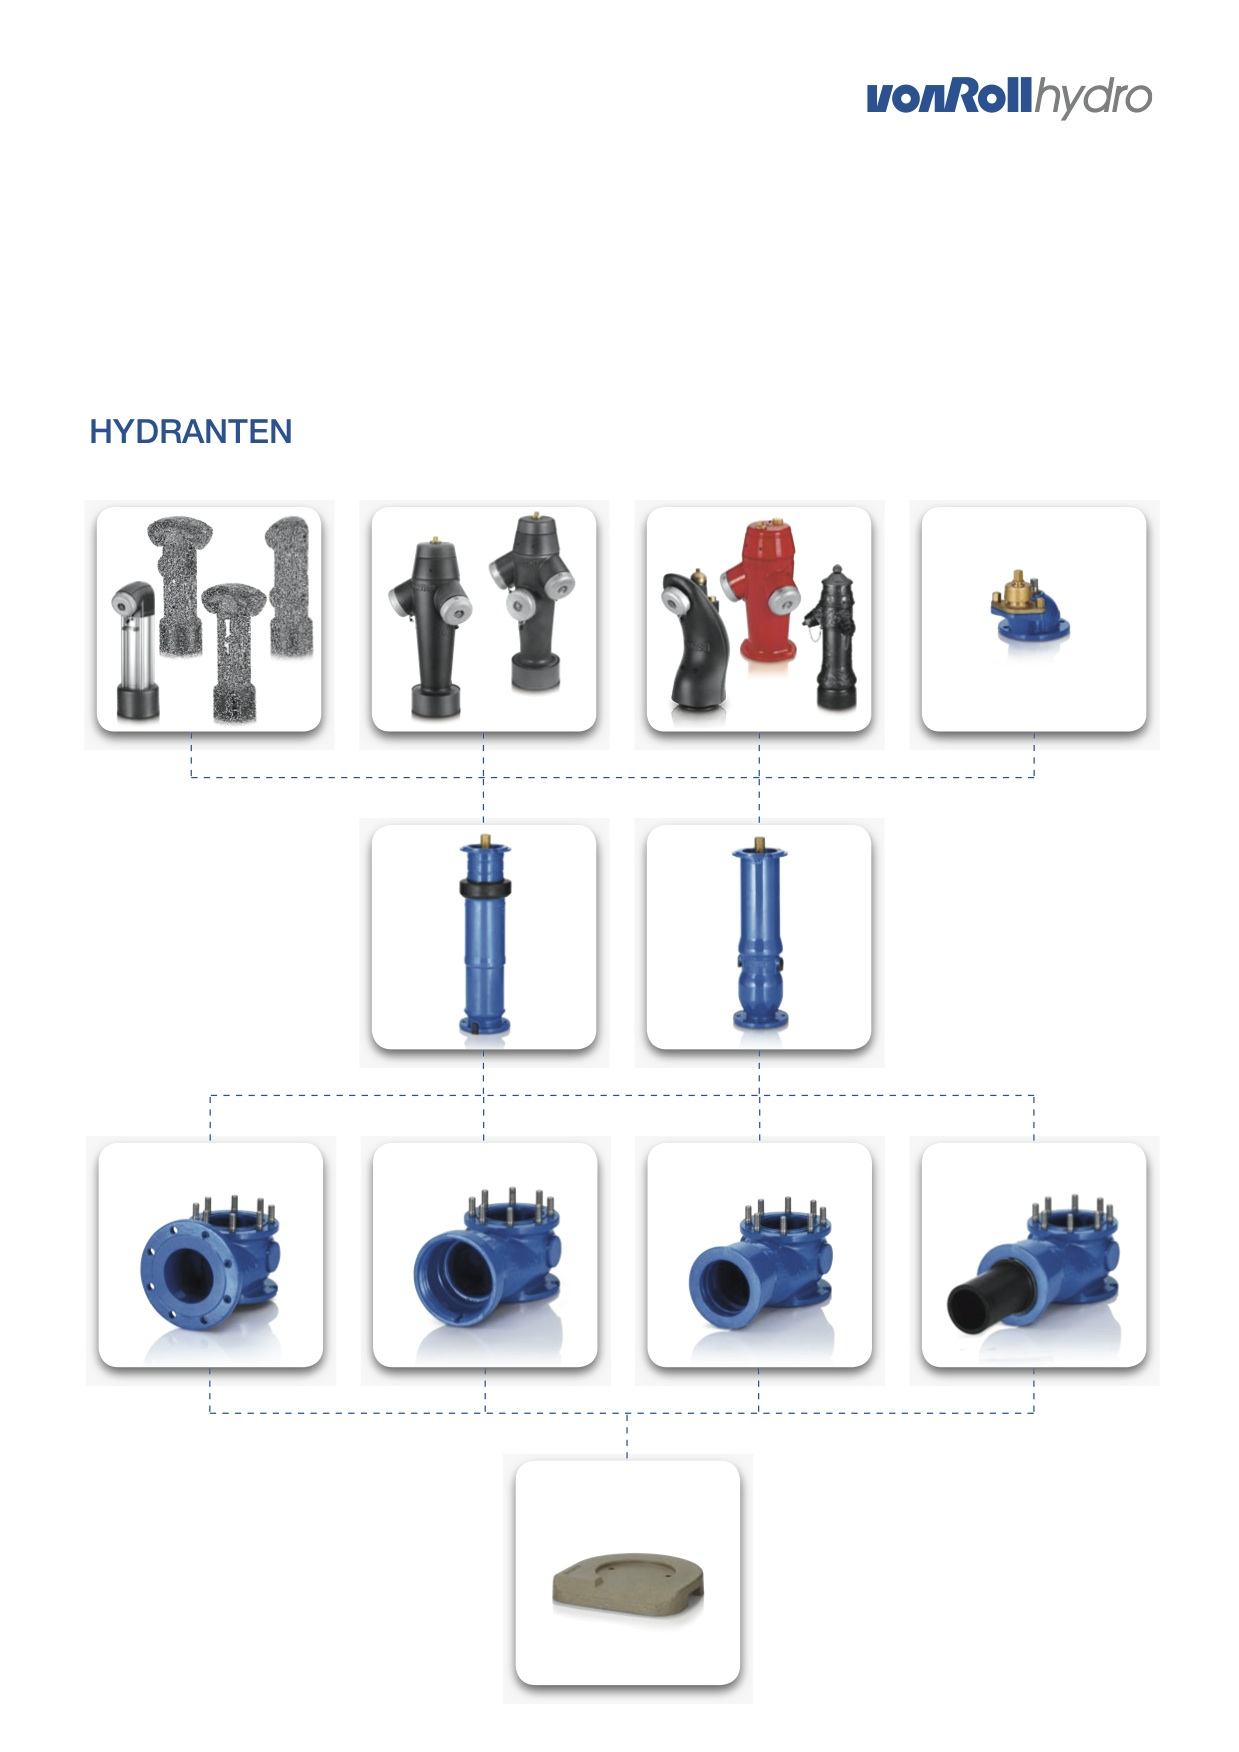 Download the hydrant catalogue as a PDF